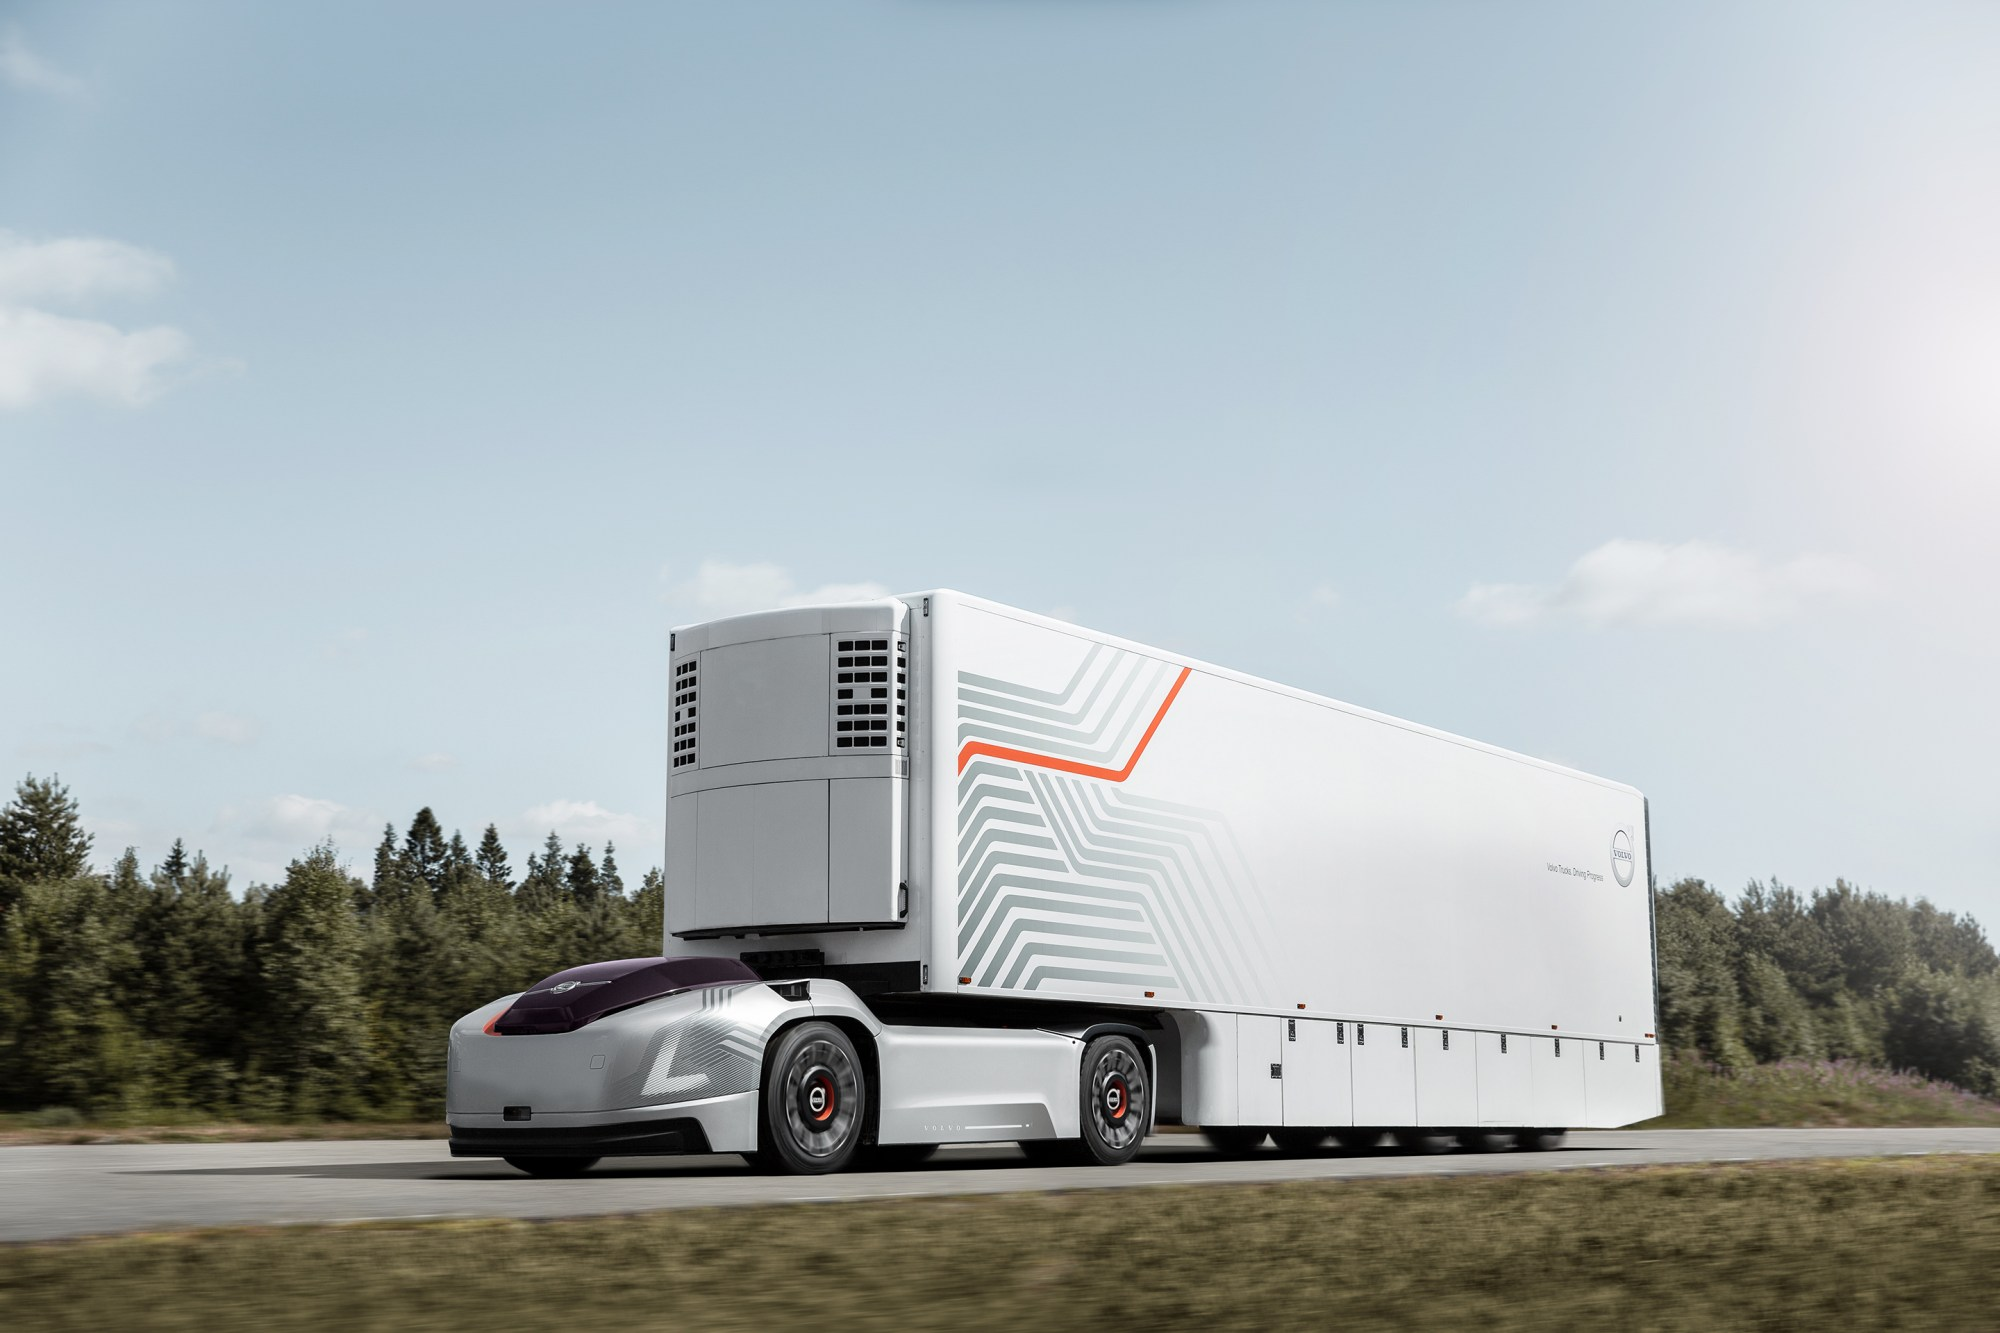 hight resolution of volvo trucks is now looking for companies interested in the concept and it wants to partner with them to develop transport solutions around the concept